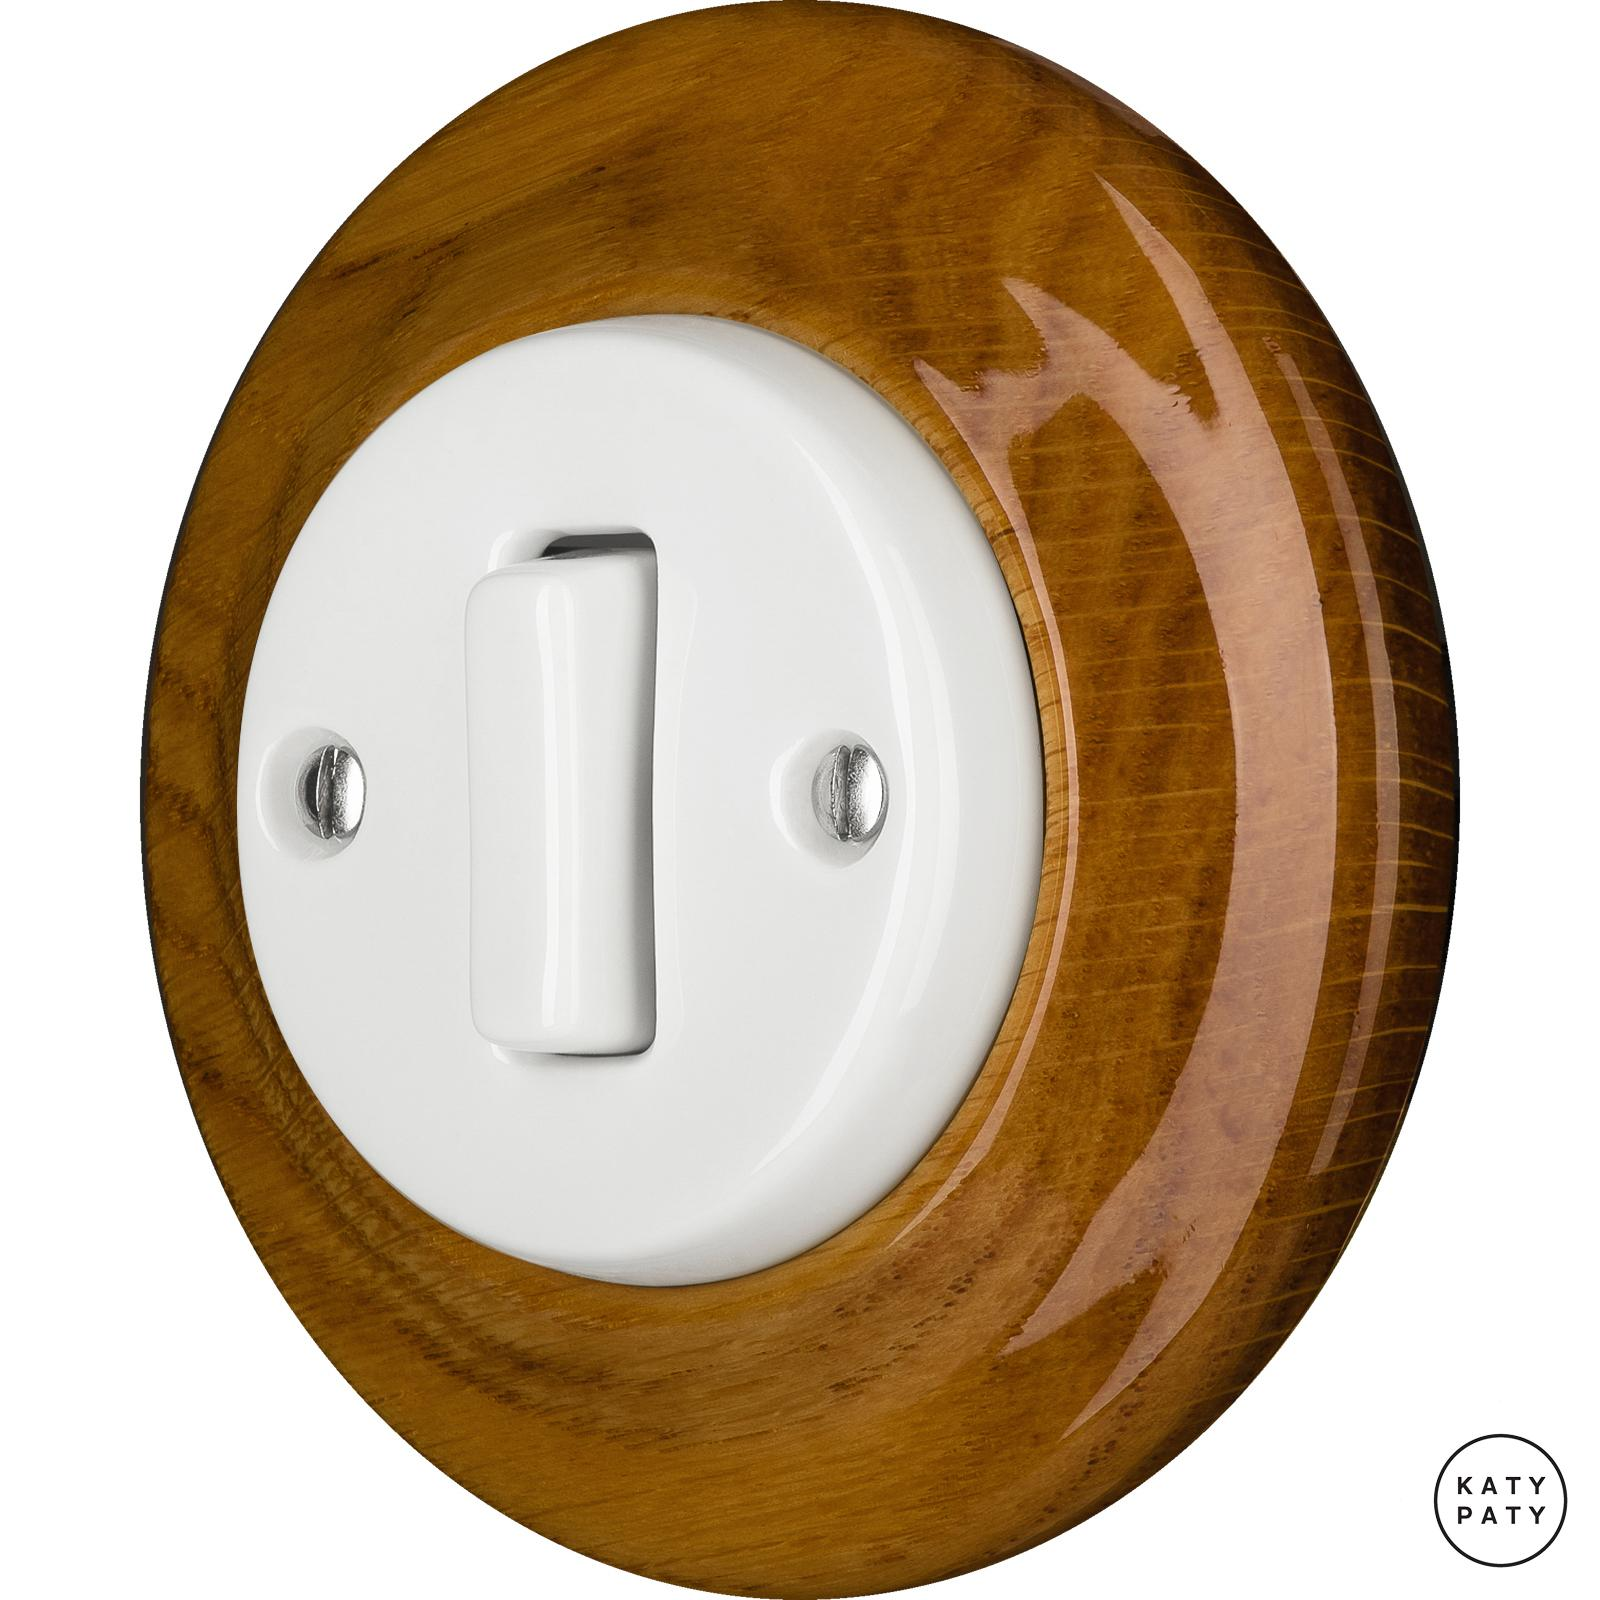 Porcelain switches - a single gang - SLIM ()  - ROBUS | Katy Paty